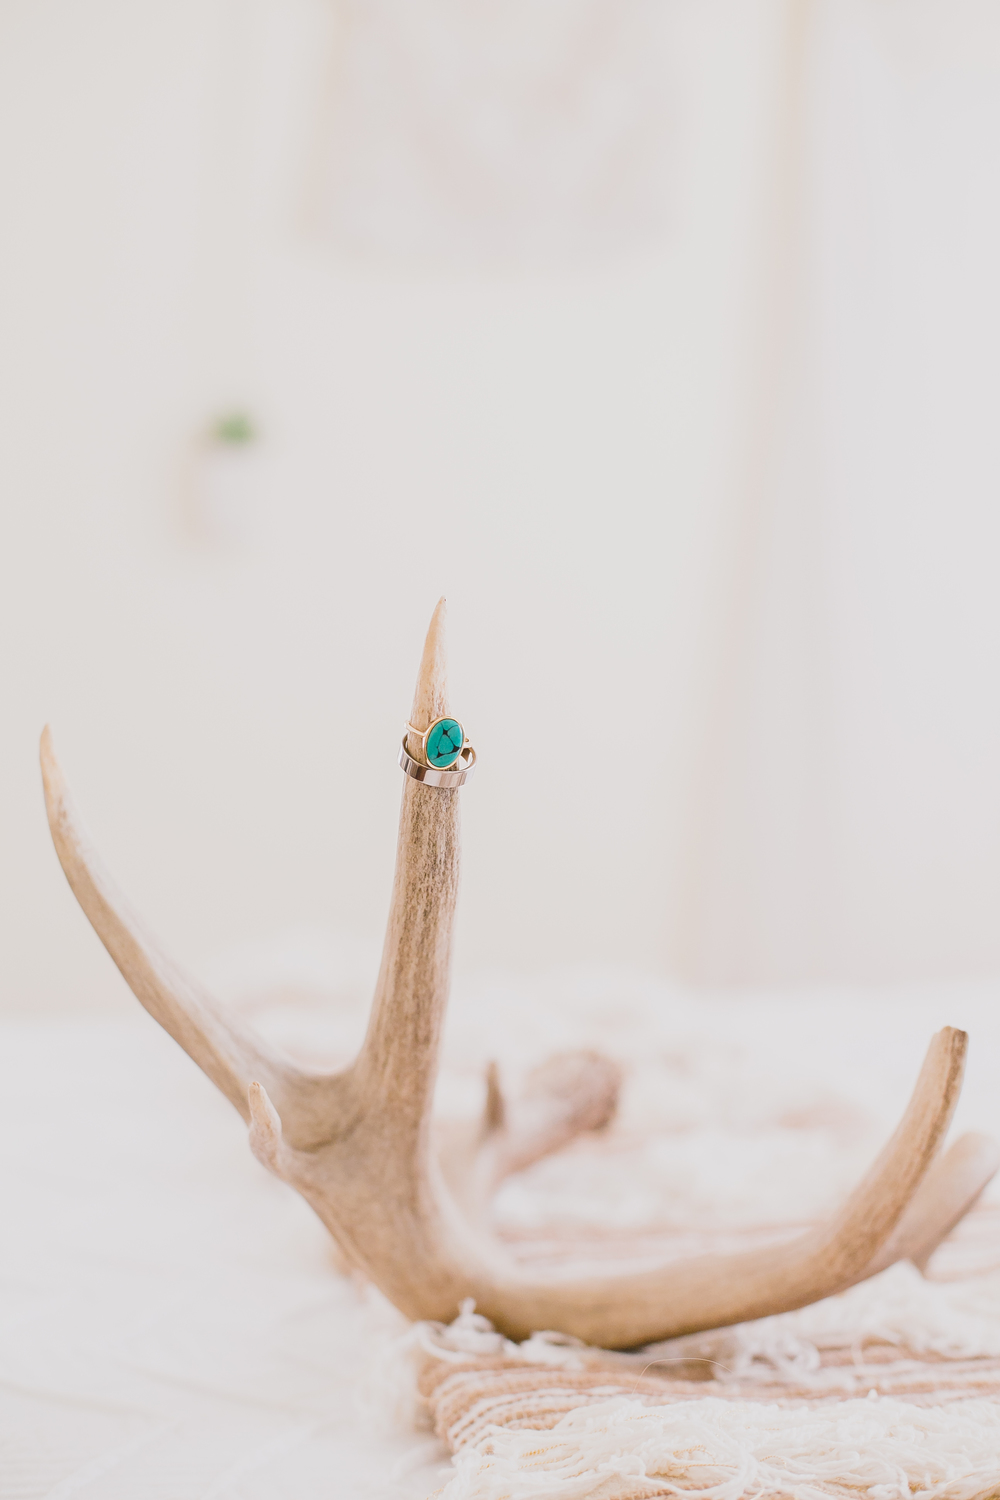 My only request for my wedding ring was that it be a turquoise stone, Dan nailed it with this oval ring from Mociun.